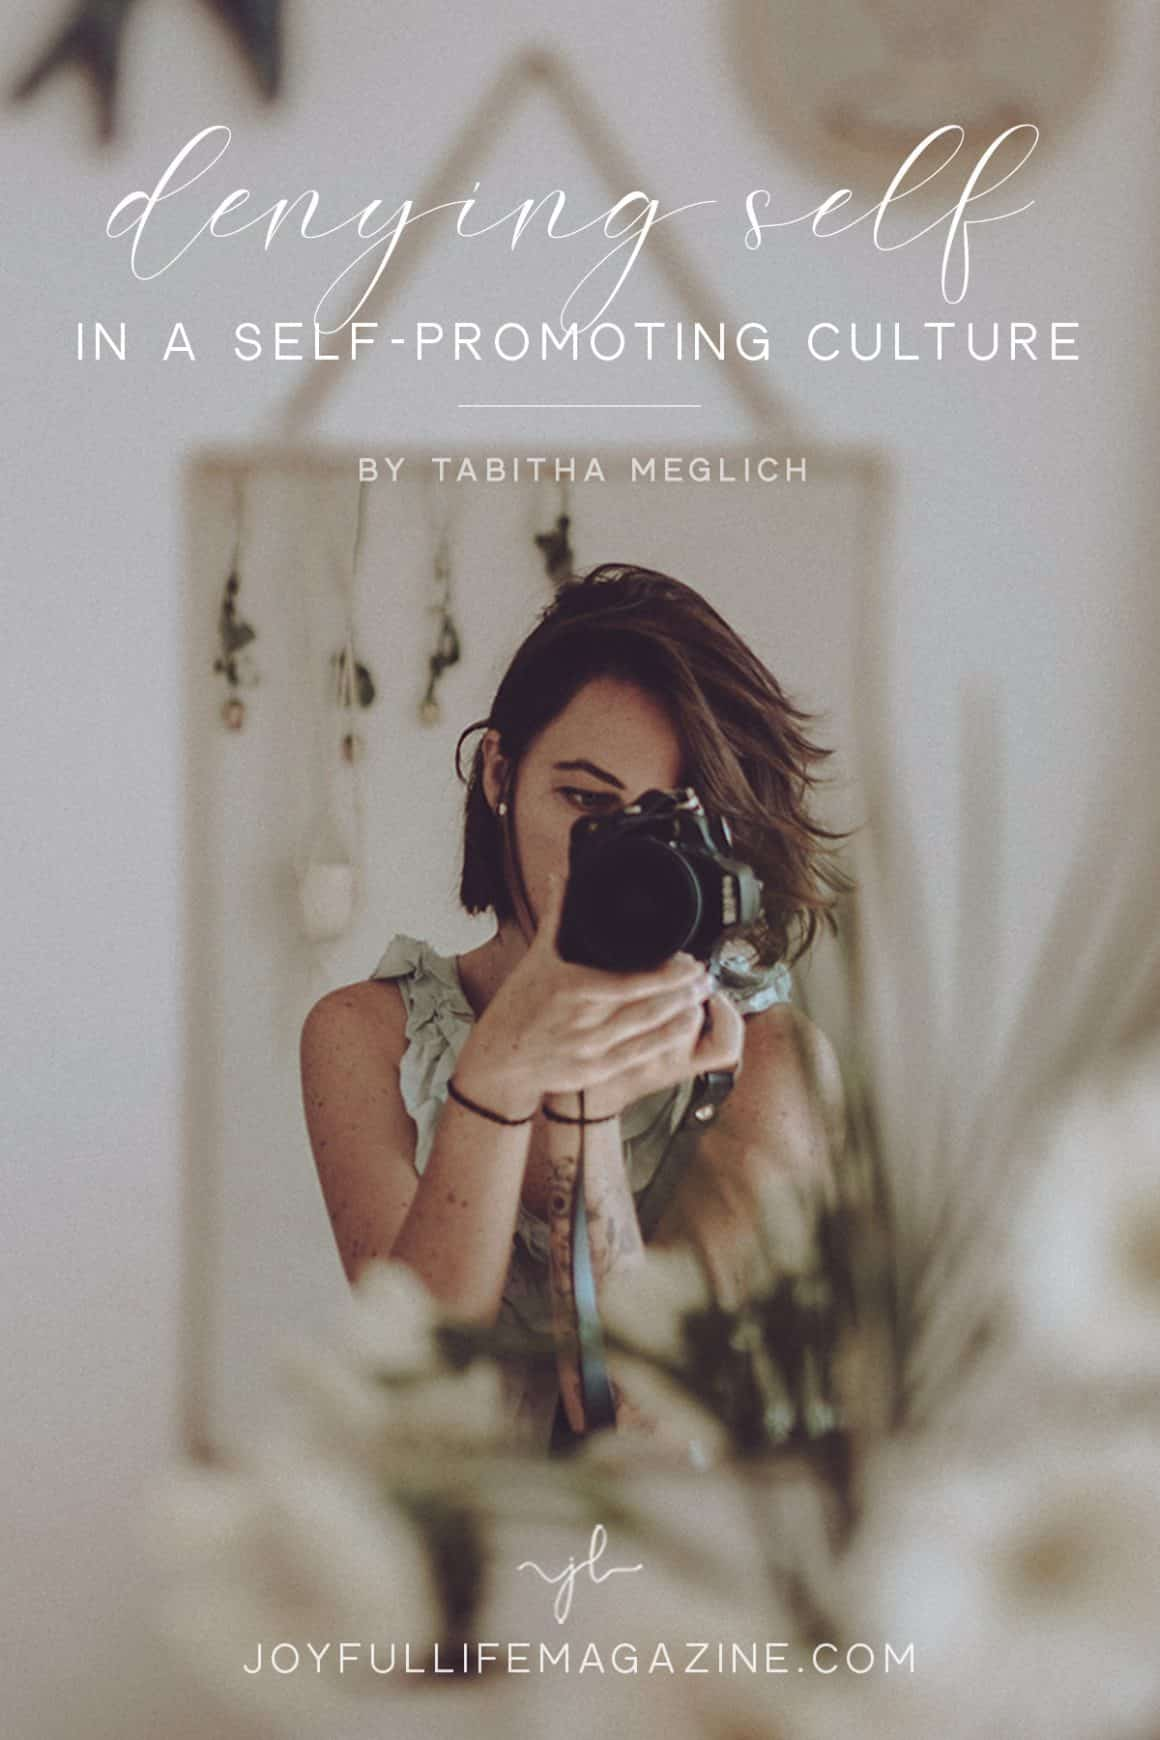 Denying Self in a Self-Promoting Culture   by Tabitha Meglich   The Joyful Life Magazine